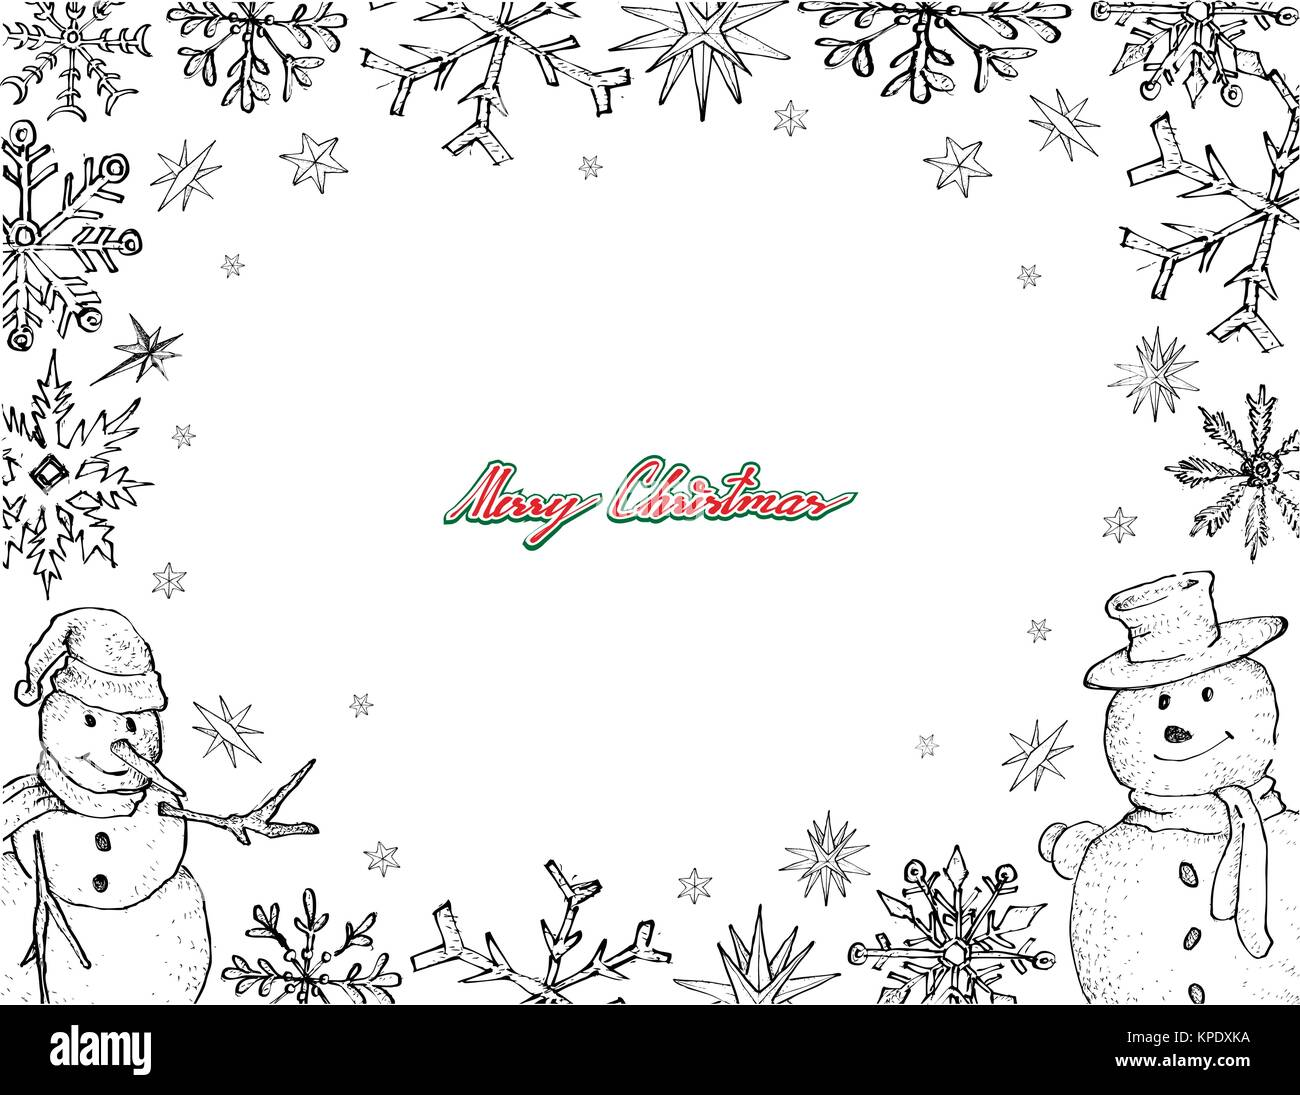 Snow And Ice Sculpture Festival Stock Vector Images - Alamy